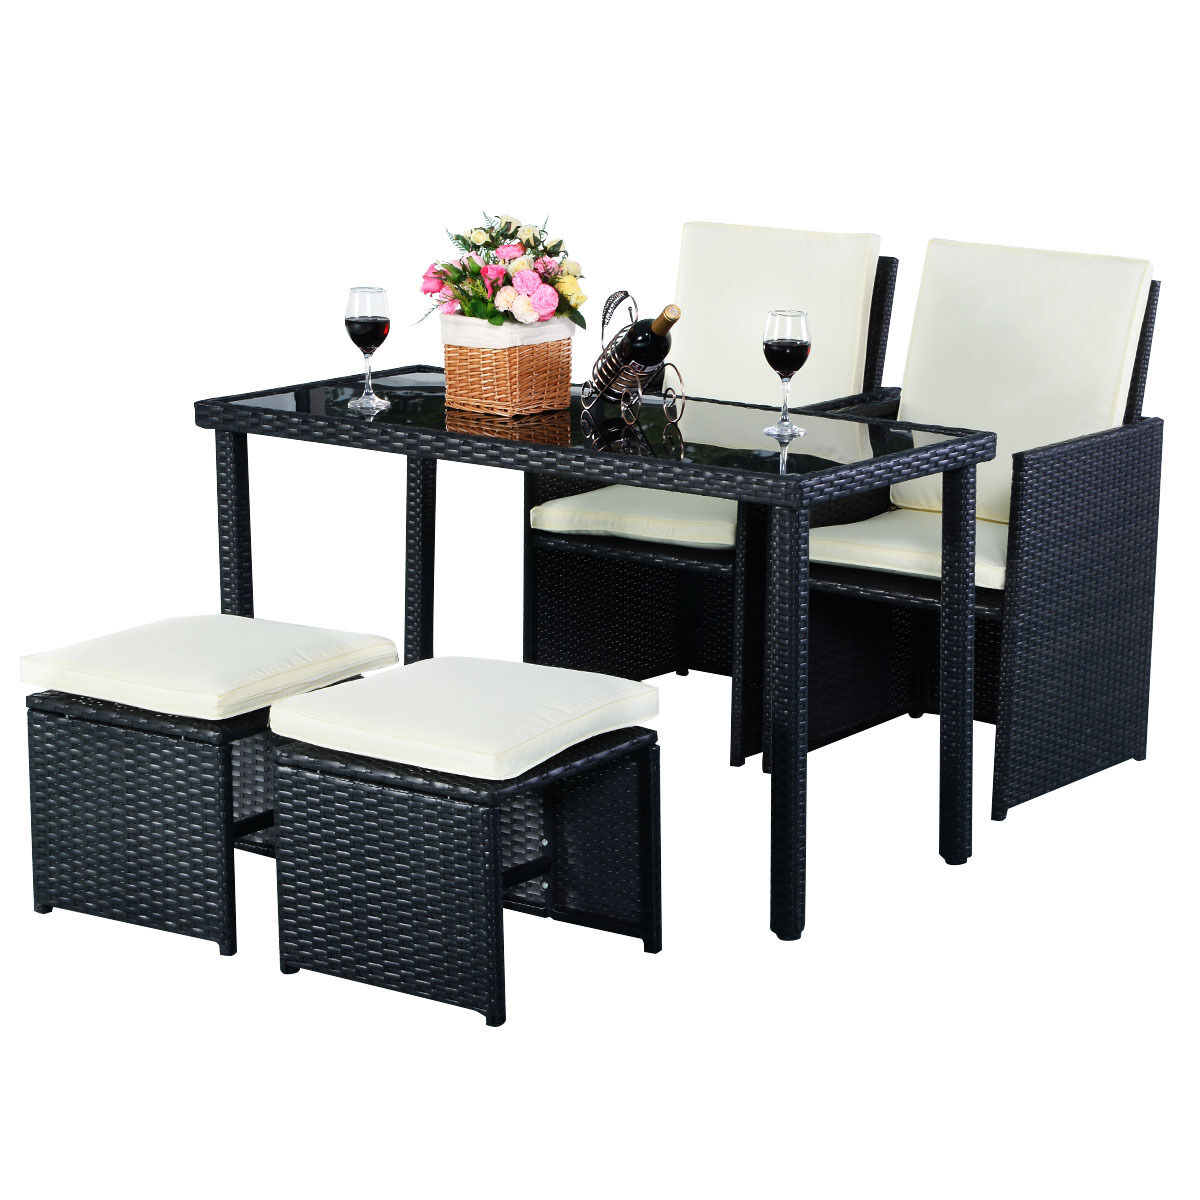 Garden Furniture - 5PC Outdoor Patio Garden Rattan Wicker Sofa Set Furniture Cushioned With Ottoman